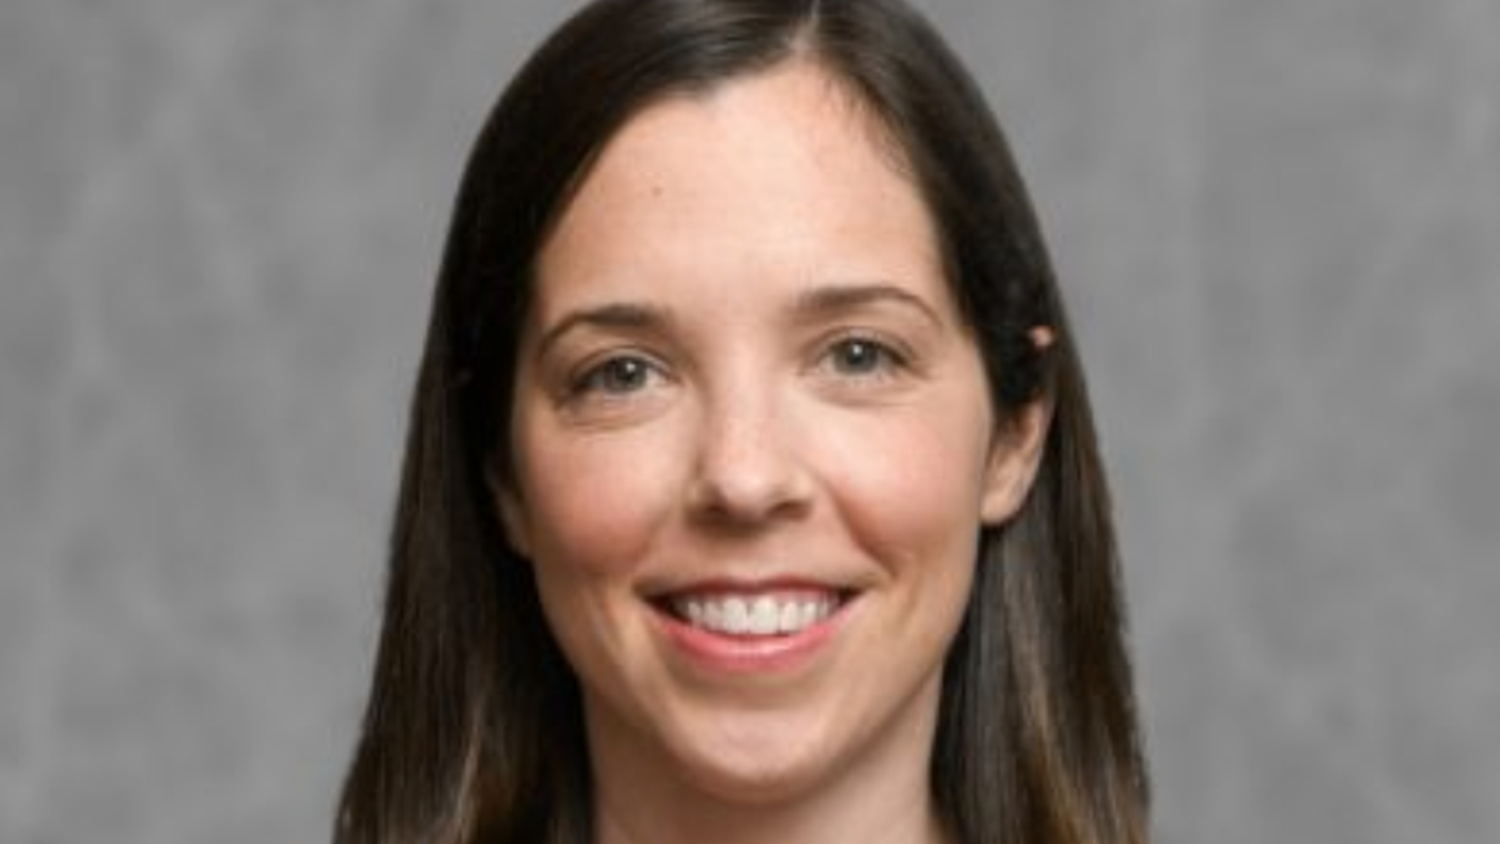 NC State College of Education Assistant Professor Jenn Ayscue, Ph.D.